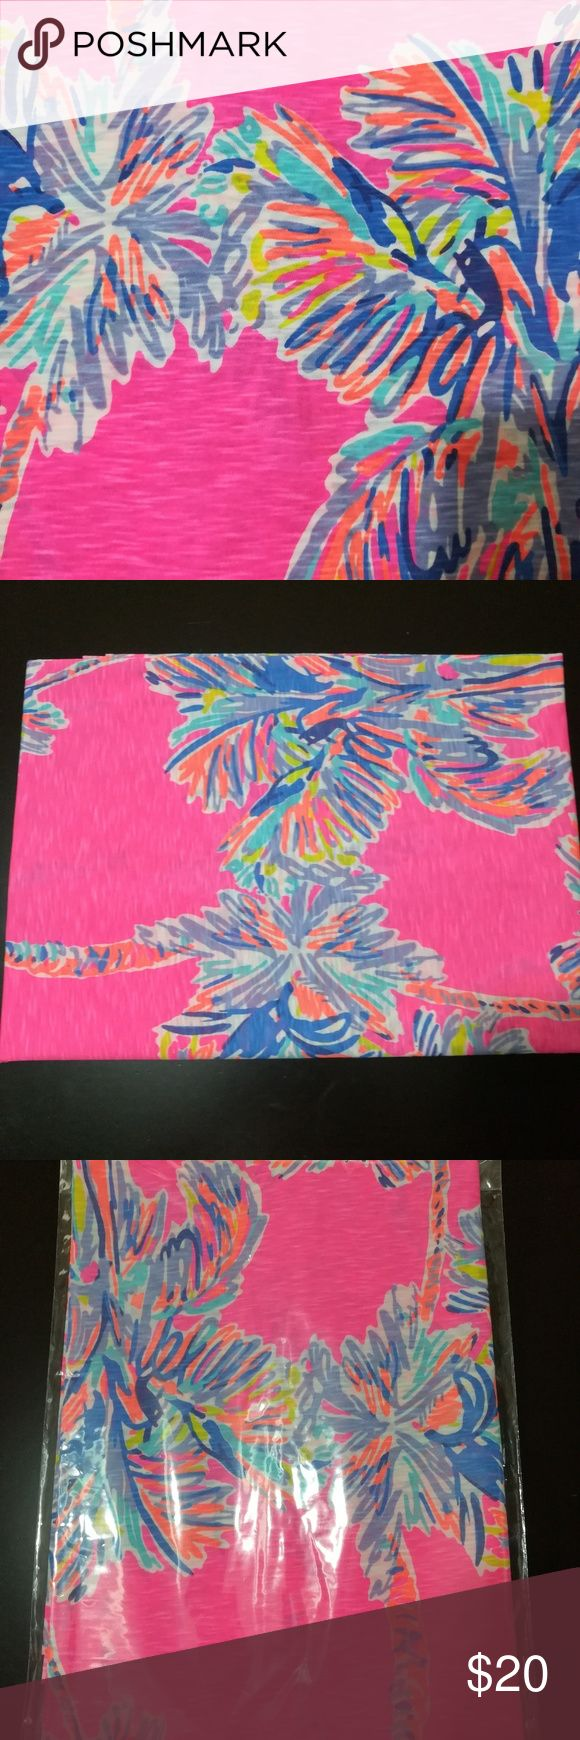 Lilly Pulitzer Fabric - Flamingo Pink Nice Stems Flamingo Pink Nice Stems - 40/1 Slubby Cotton Lilly Pulitzer Other